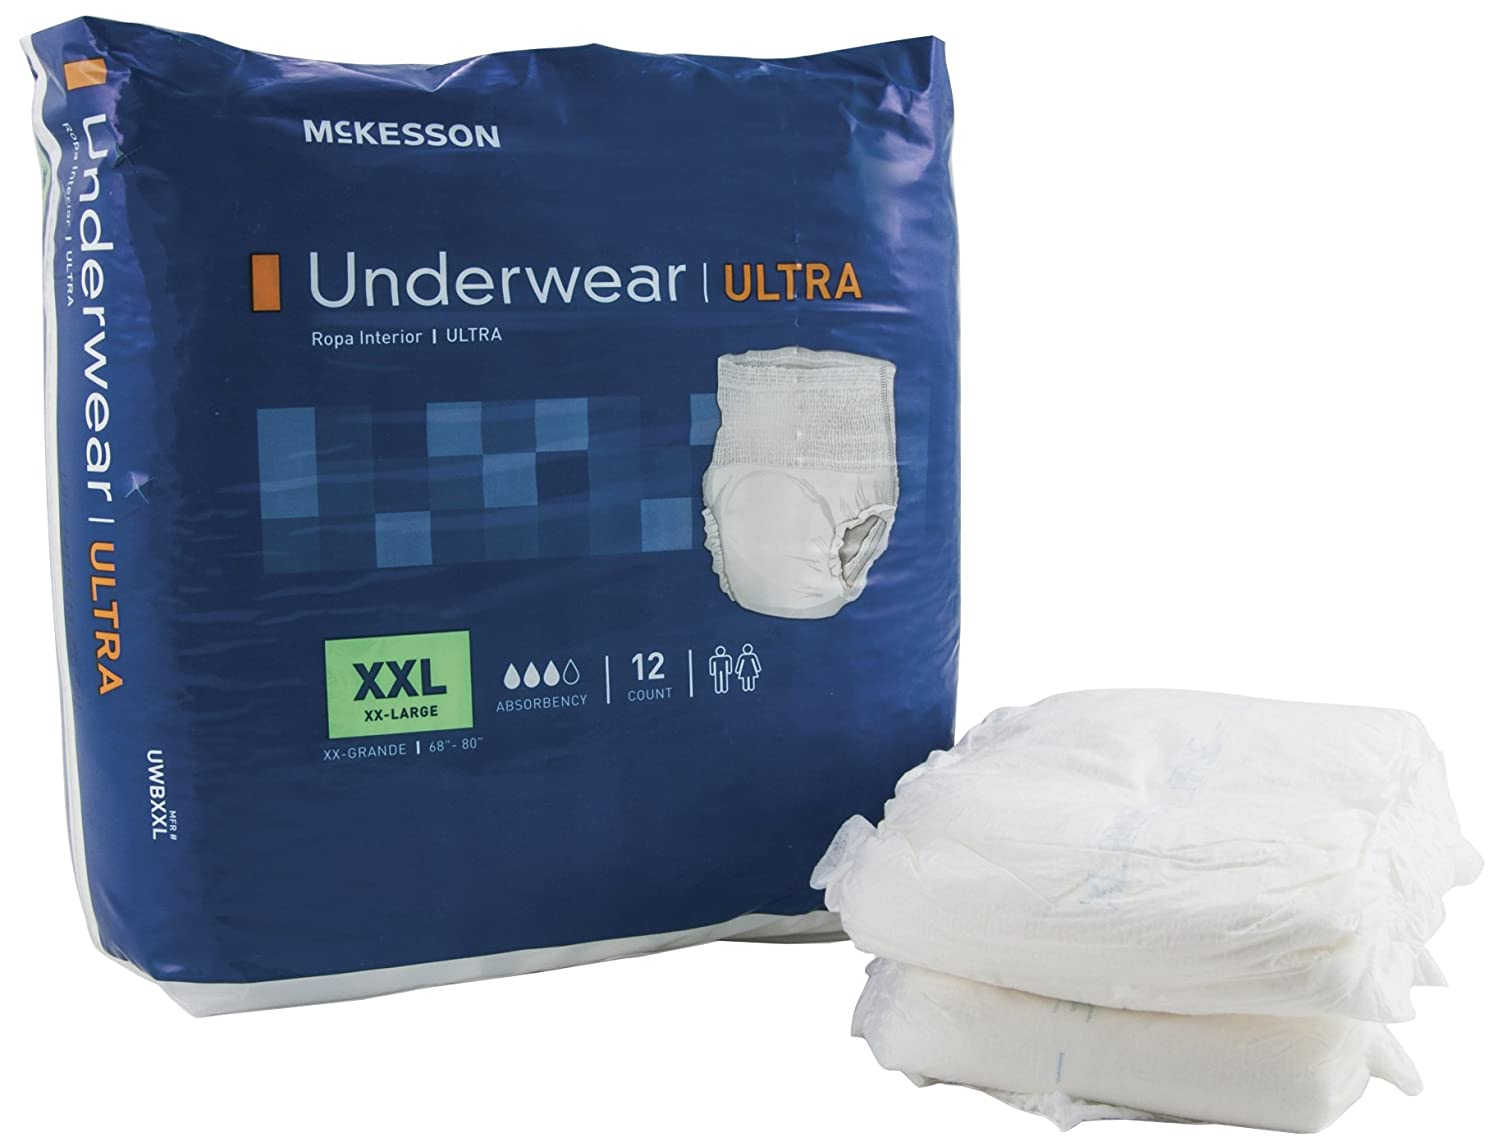 Amazon.com: McKesson UWBXXL Pull on Absorbent Underwear, XX-Large, 68